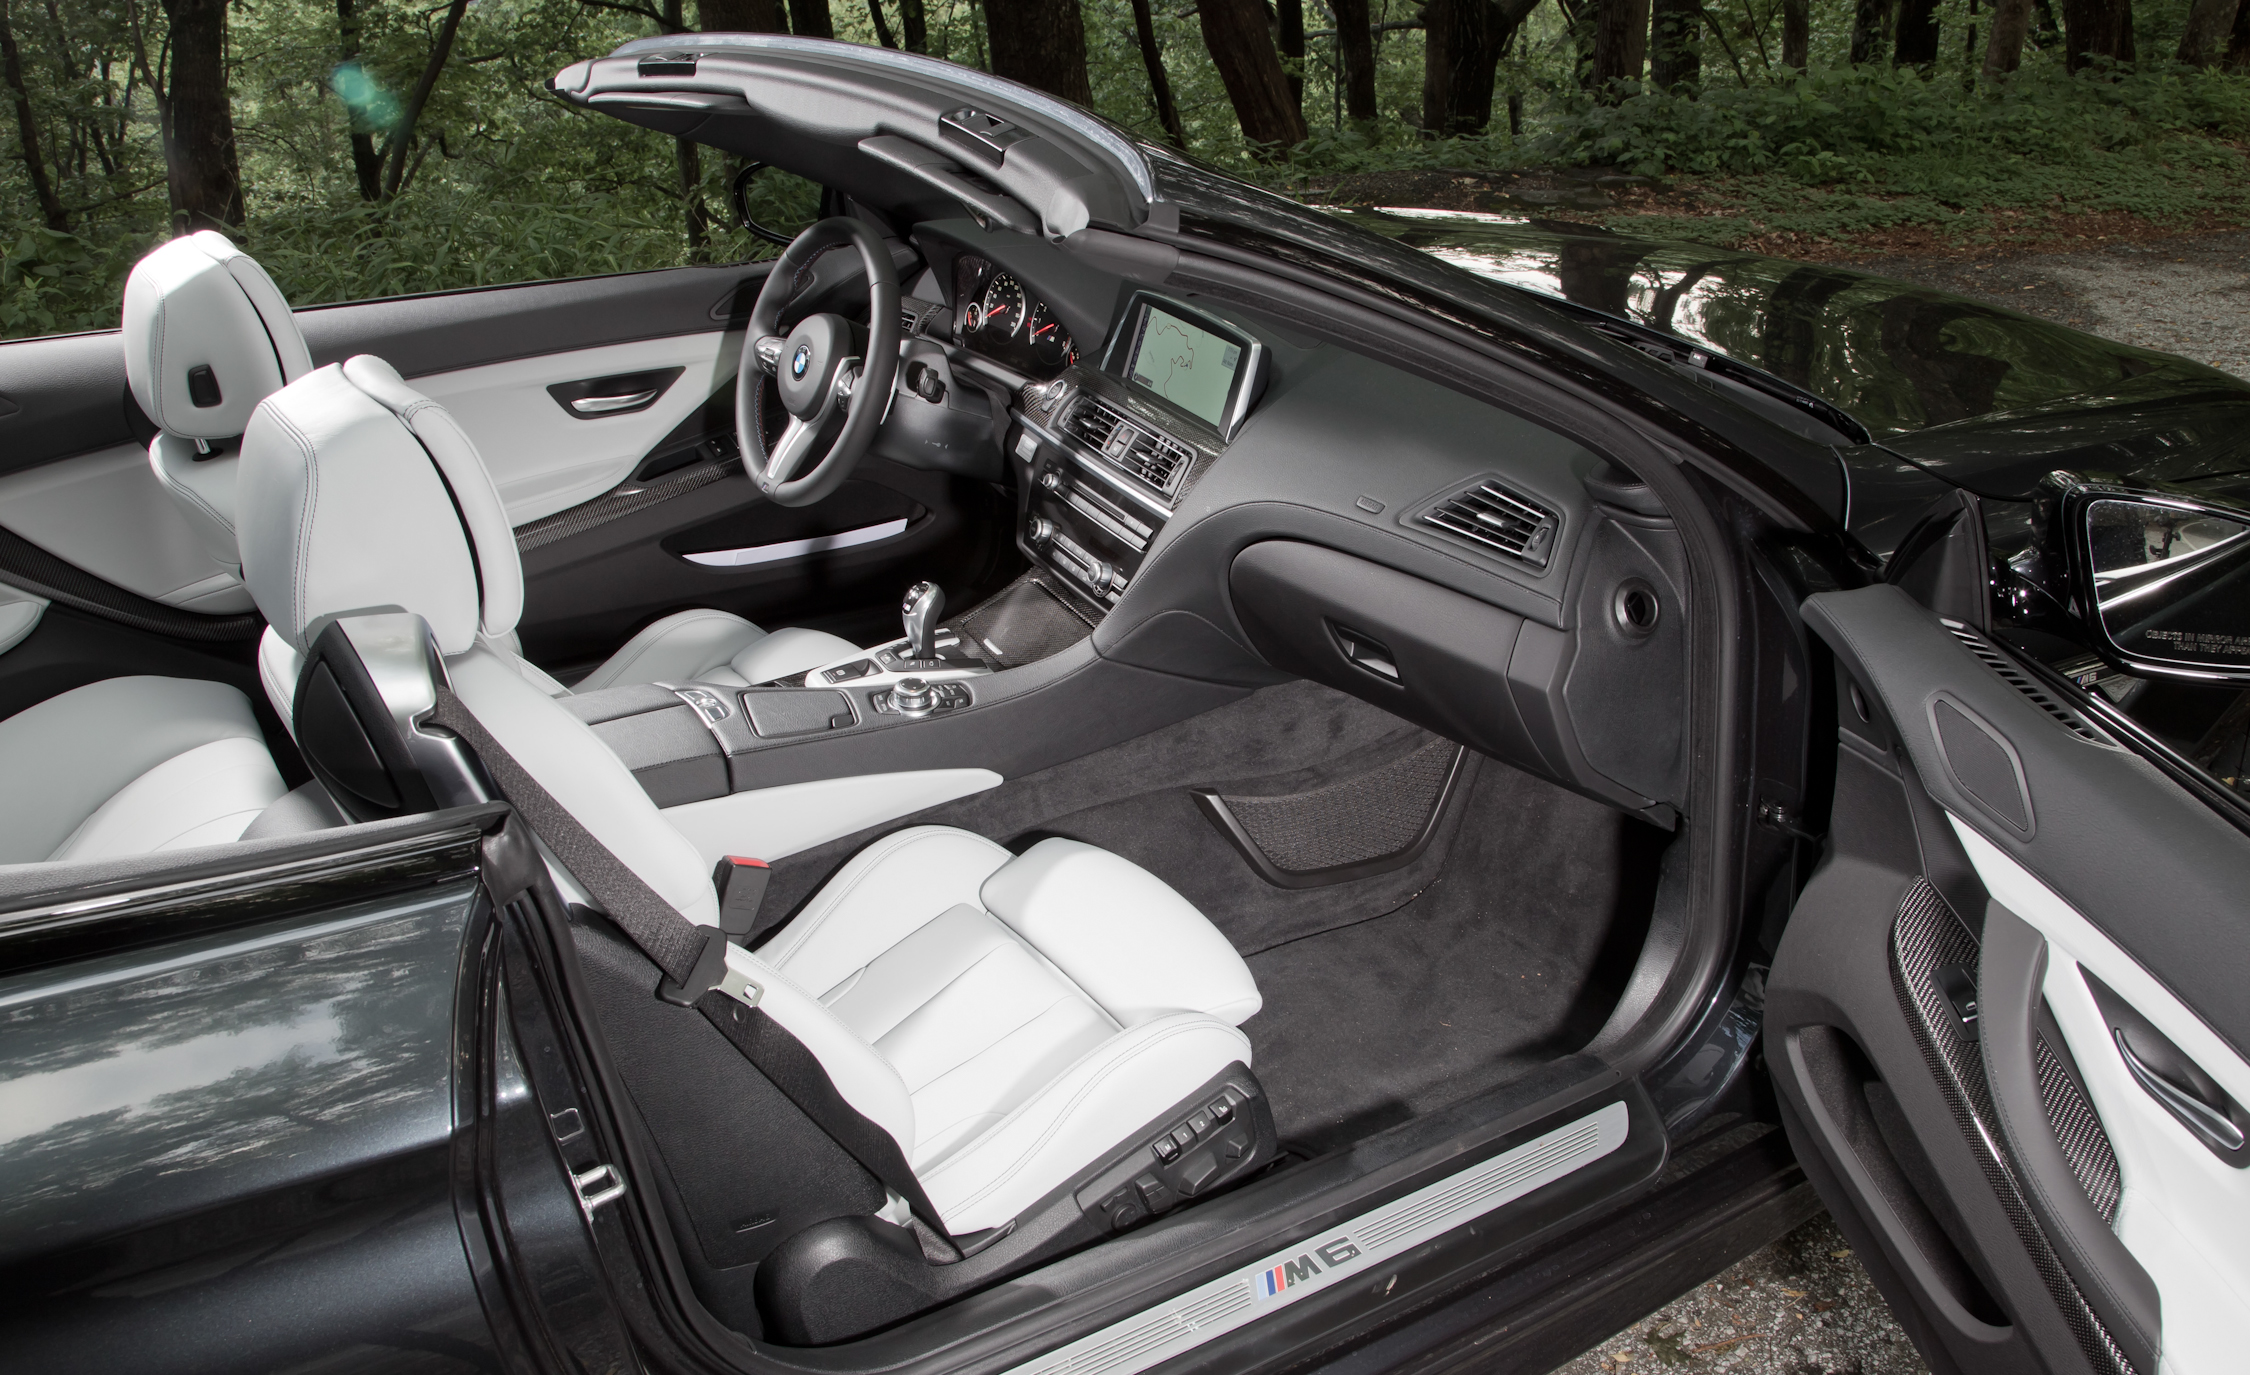 2012 BMW M6 Convertible Interior (Photo 8 of 30)